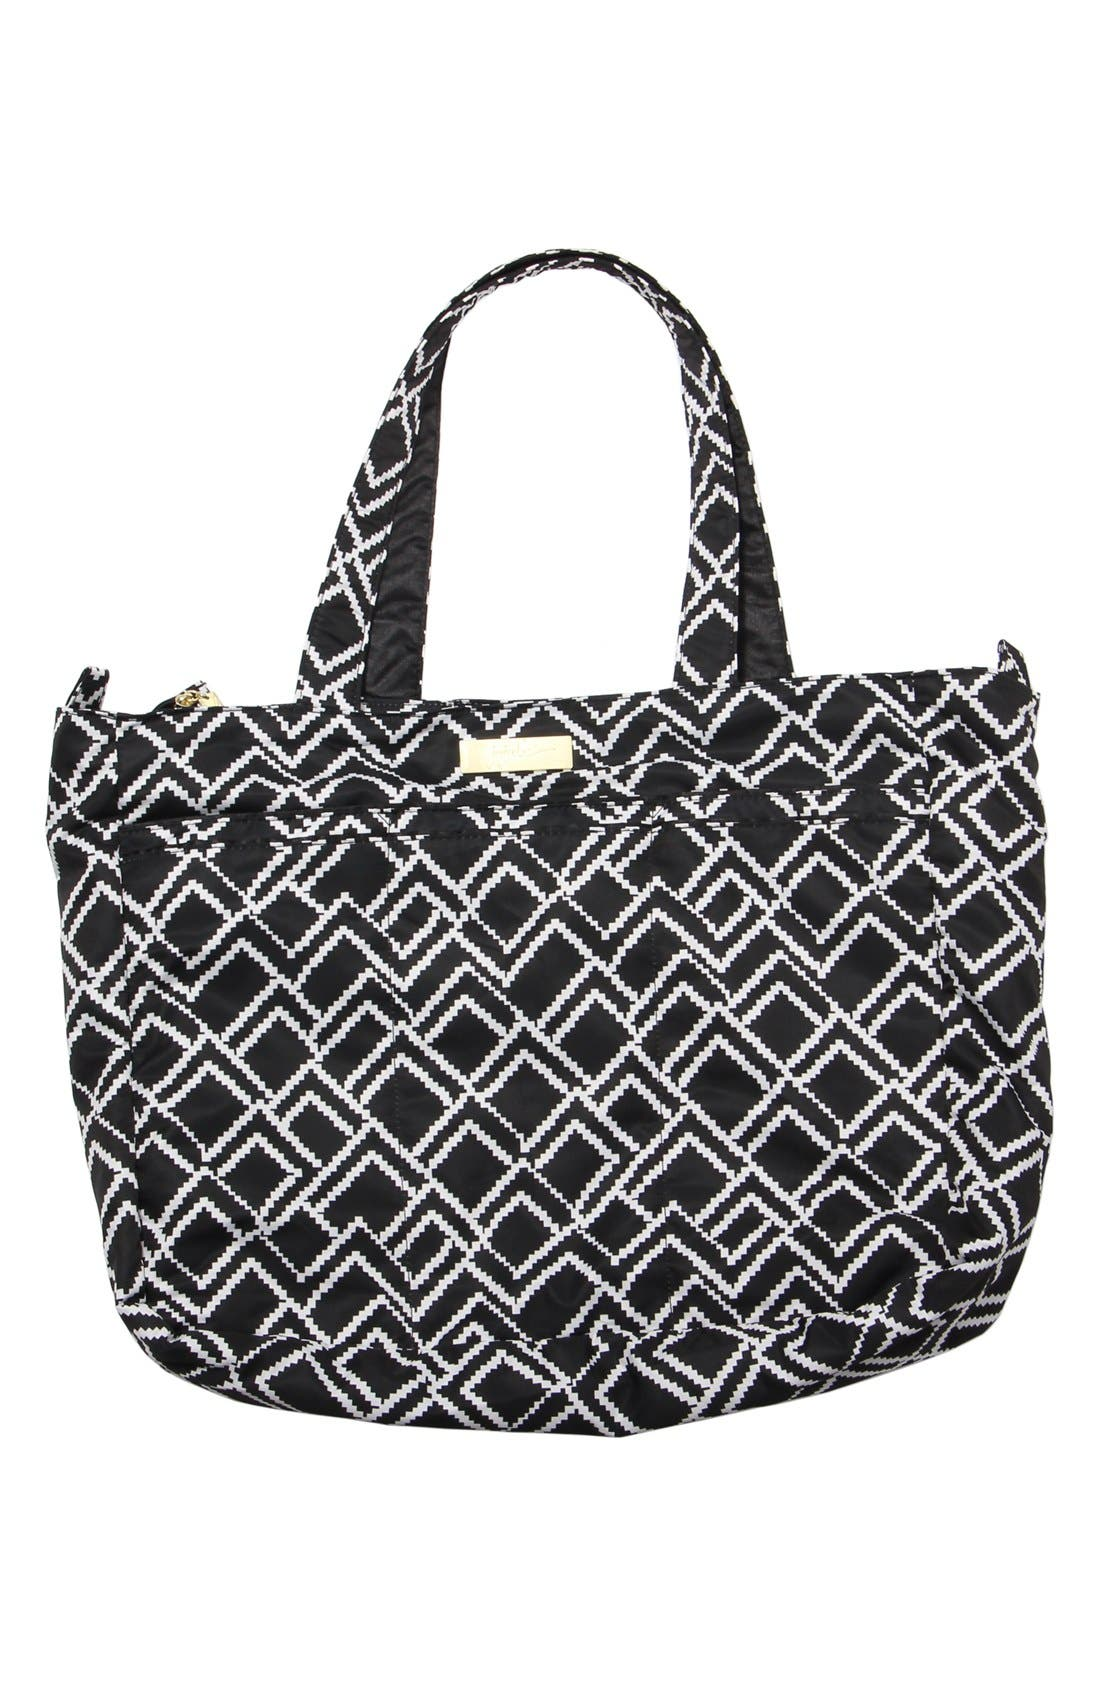 'Legacy Super Be - The First Lady' Diaper Bag,                             Main thumbnail 1, color,                             The Empress